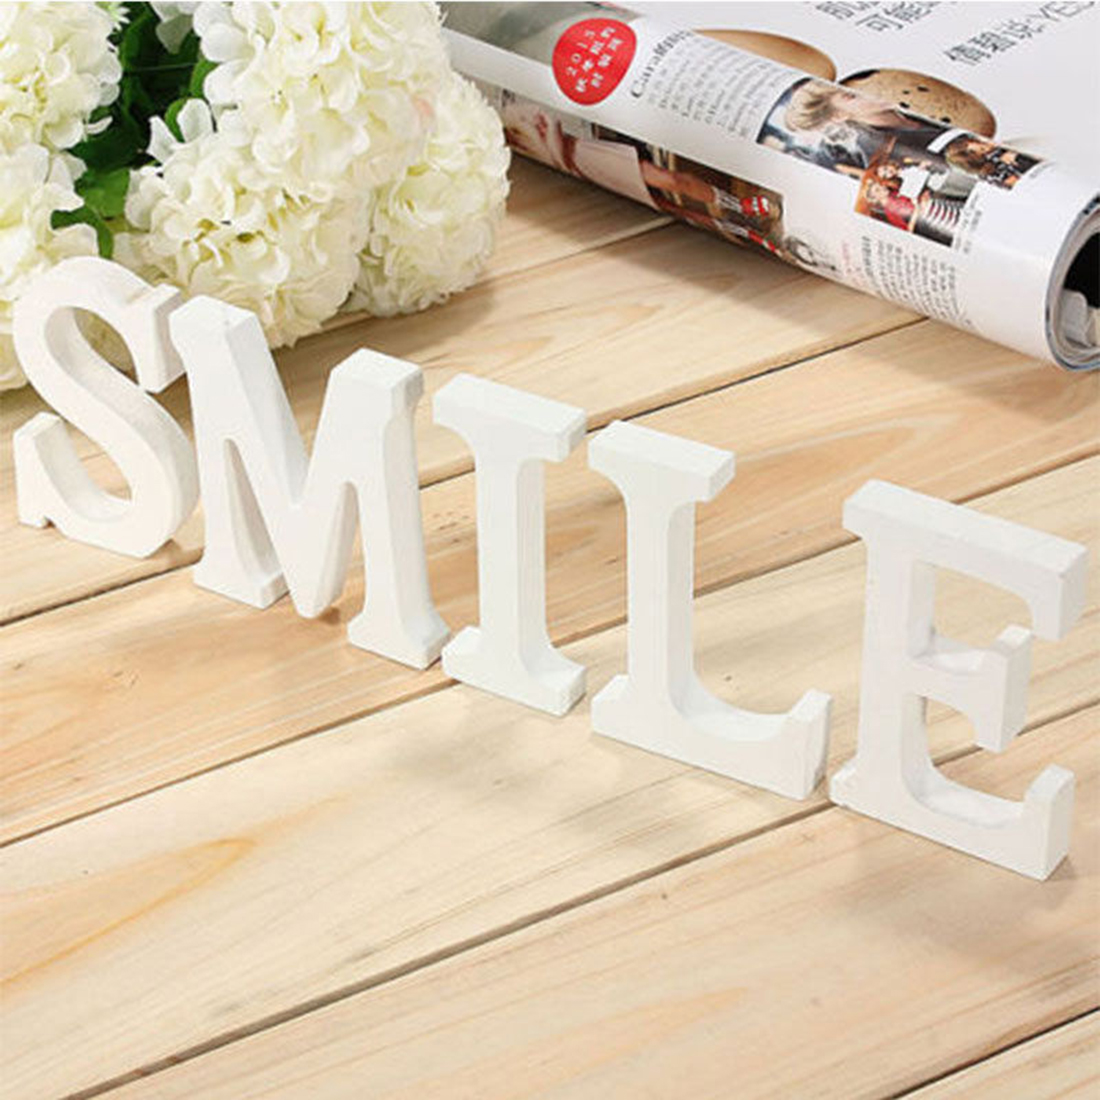 Fengrise wooden letters diy wood gift wedding table decor craft home creative english letters a z craft wood wooden letters bridal wedding party birthday toys home junglespirit Image collections